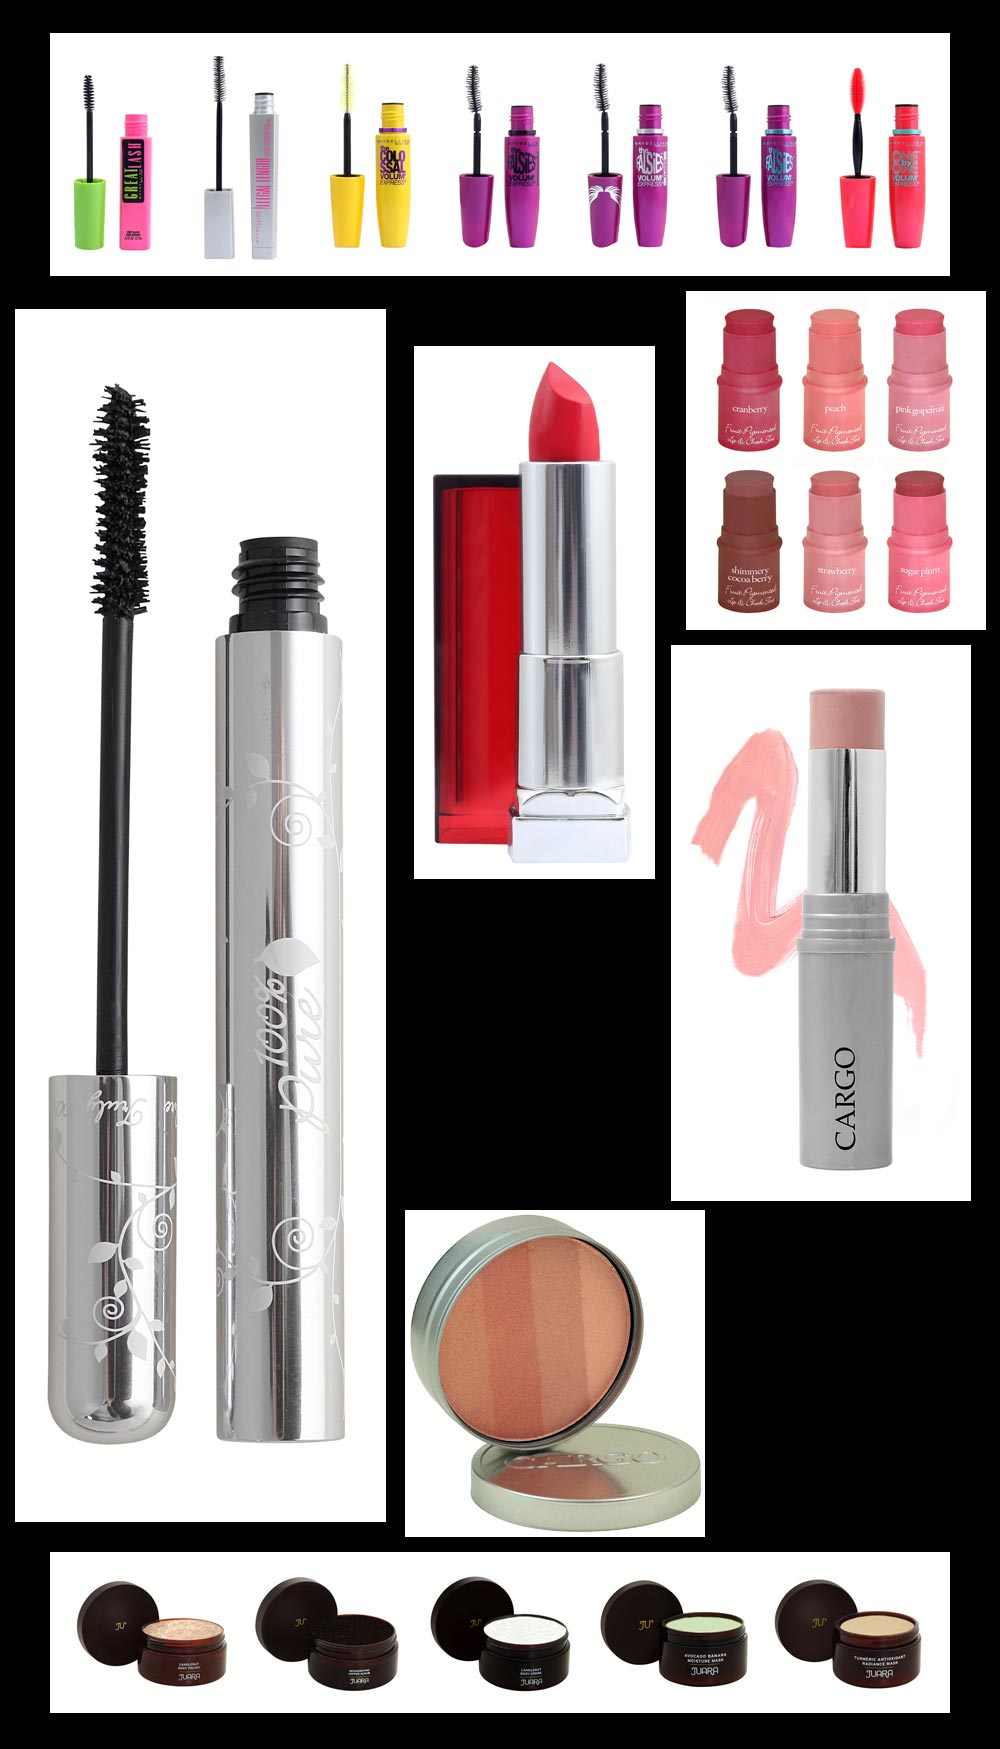 Cosmetics Product Photography - Mascara, Lip Sticks, Clushes, Cremes